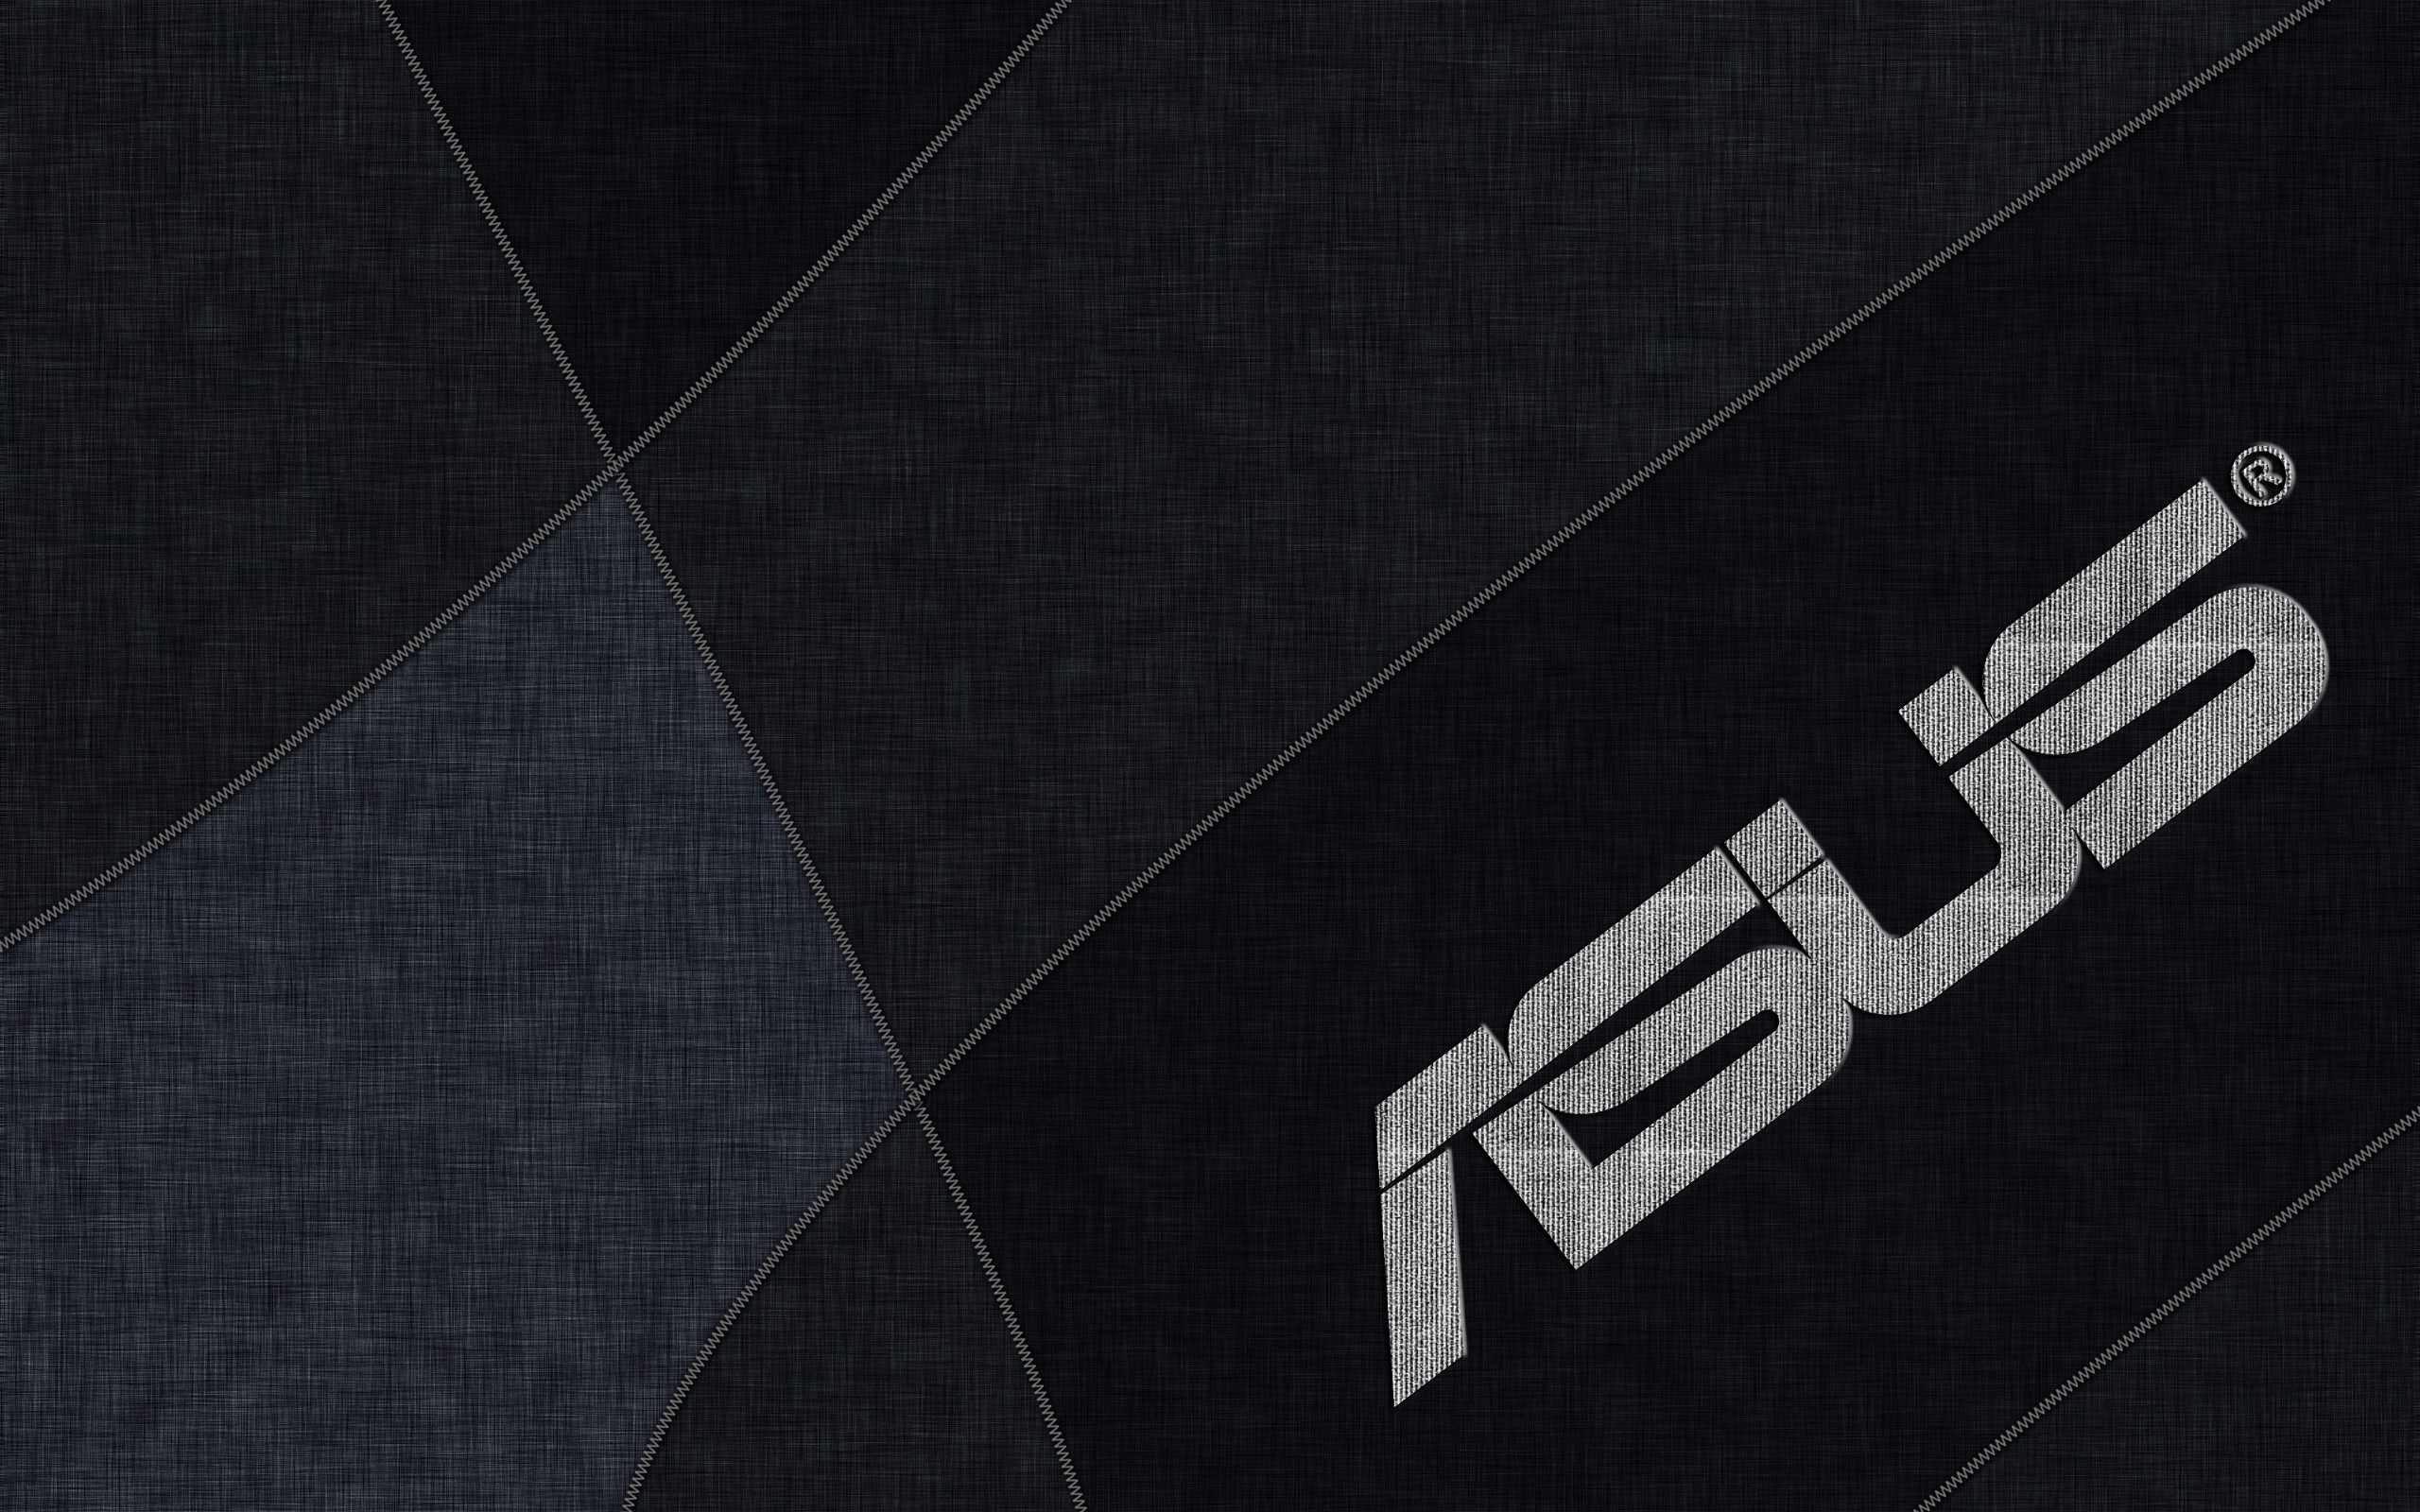 wallpaper asus notebooks logo